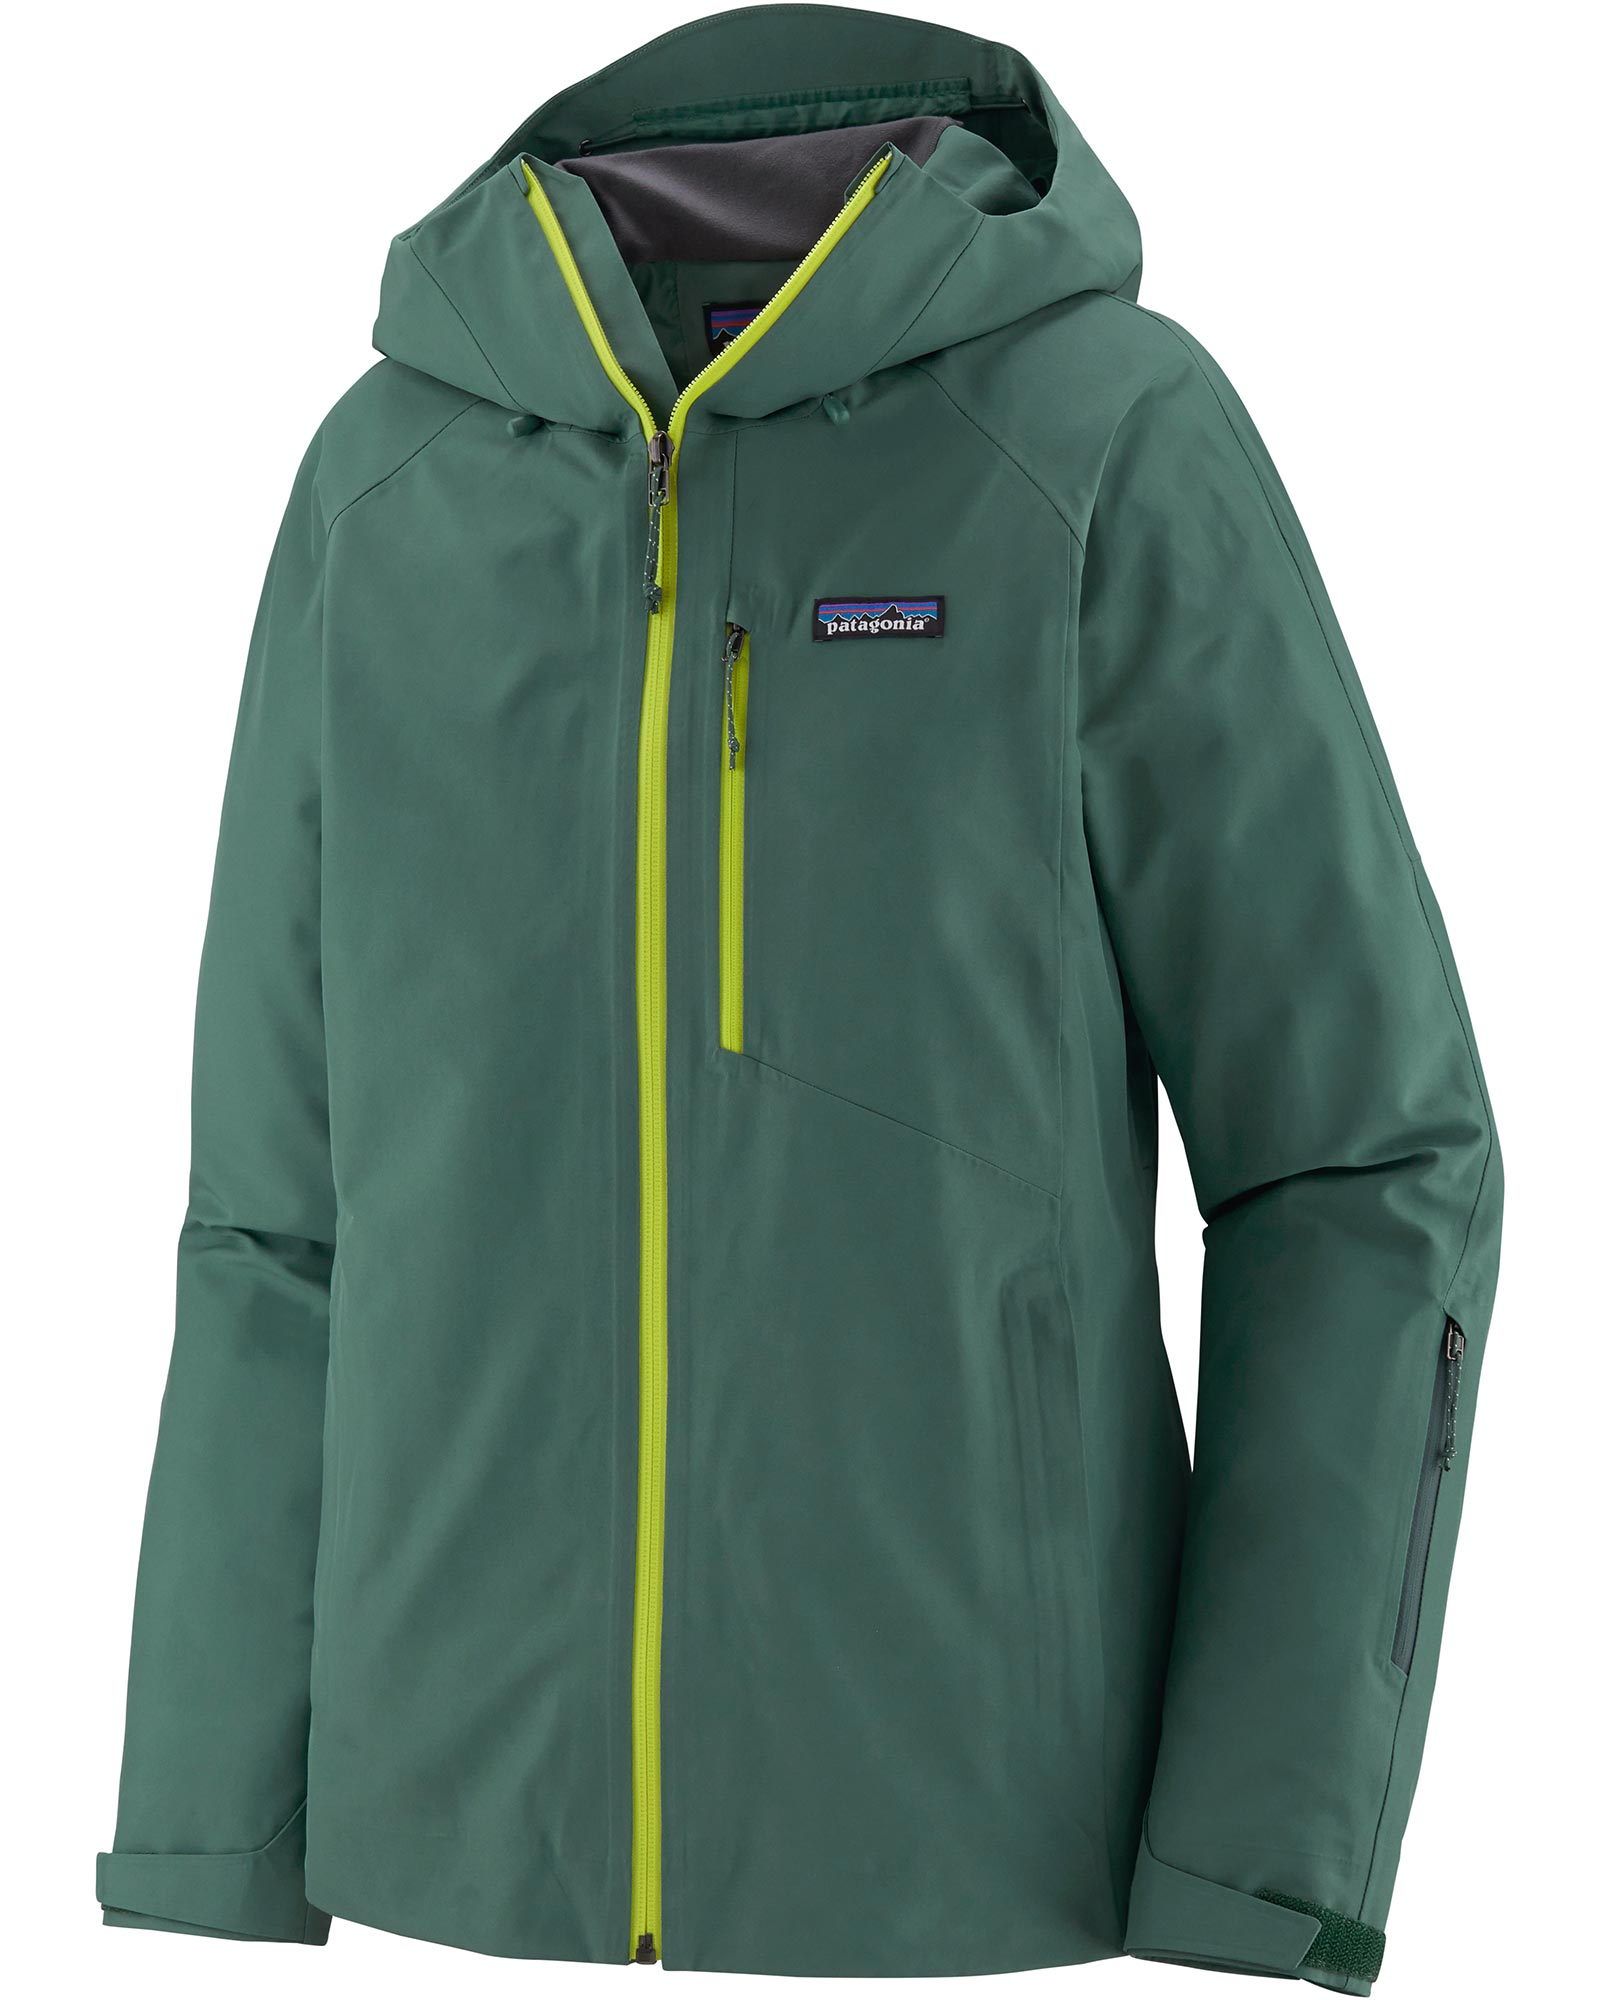 Patagonia Women's Powder Bowl GORE-TEX Ski Jacket 0